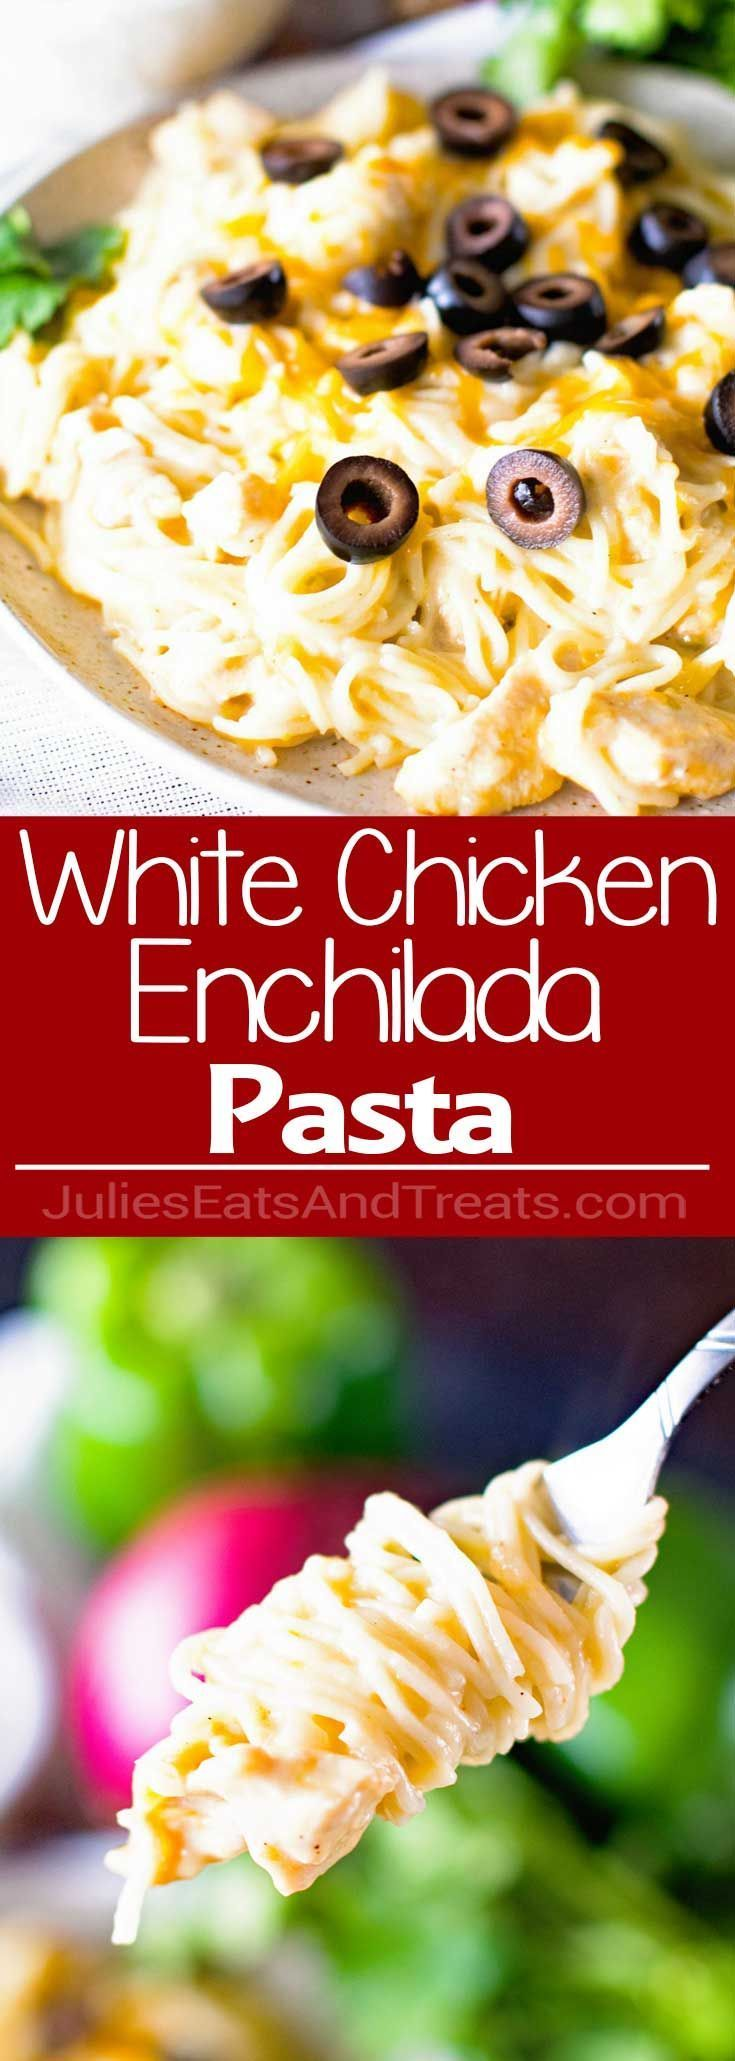 White Chicken Enchilada Pasta Recipe - A delicious pasta filled with all the wonderful flavor of white chicken enchiladas with the help of green chilies, a little sour cream, and melted jack cheese! via @julieseats